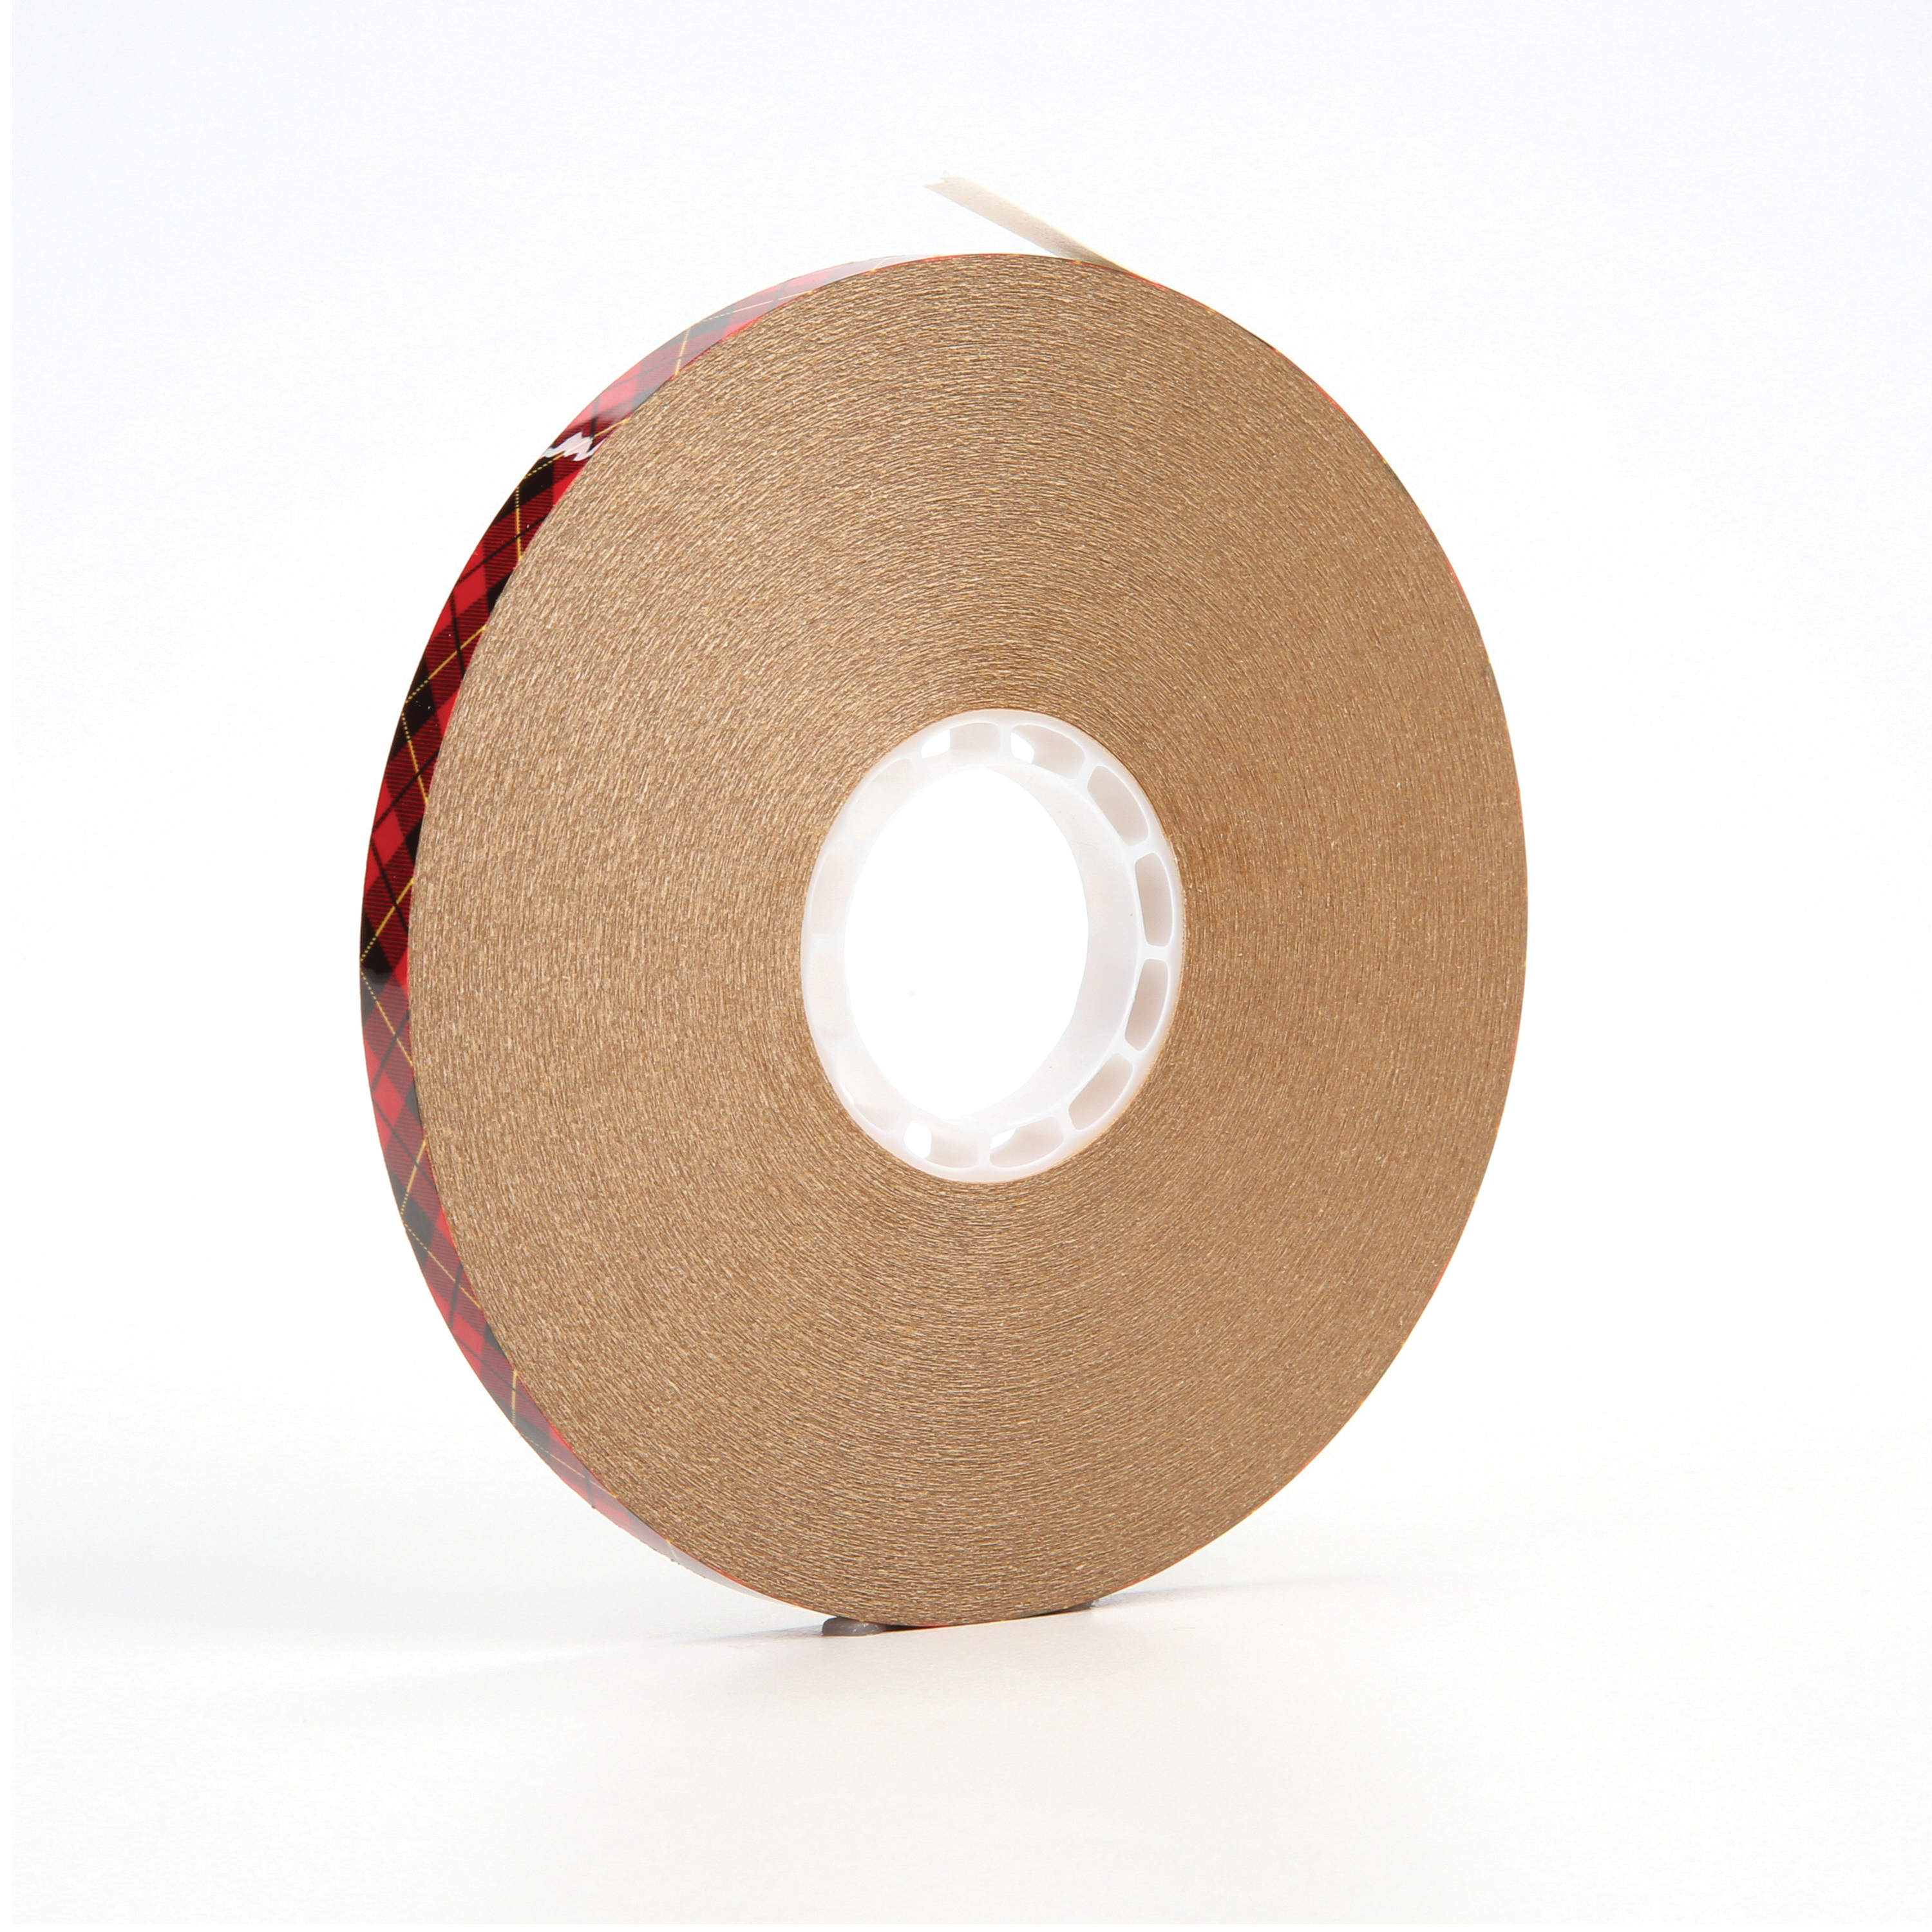 3M™ 021200-38442 Adhesive Transfer Tape, 60 yd L x 1/4 in W, 2 mil THK, 2 mil 400 Acrylic Adhesive, Clear